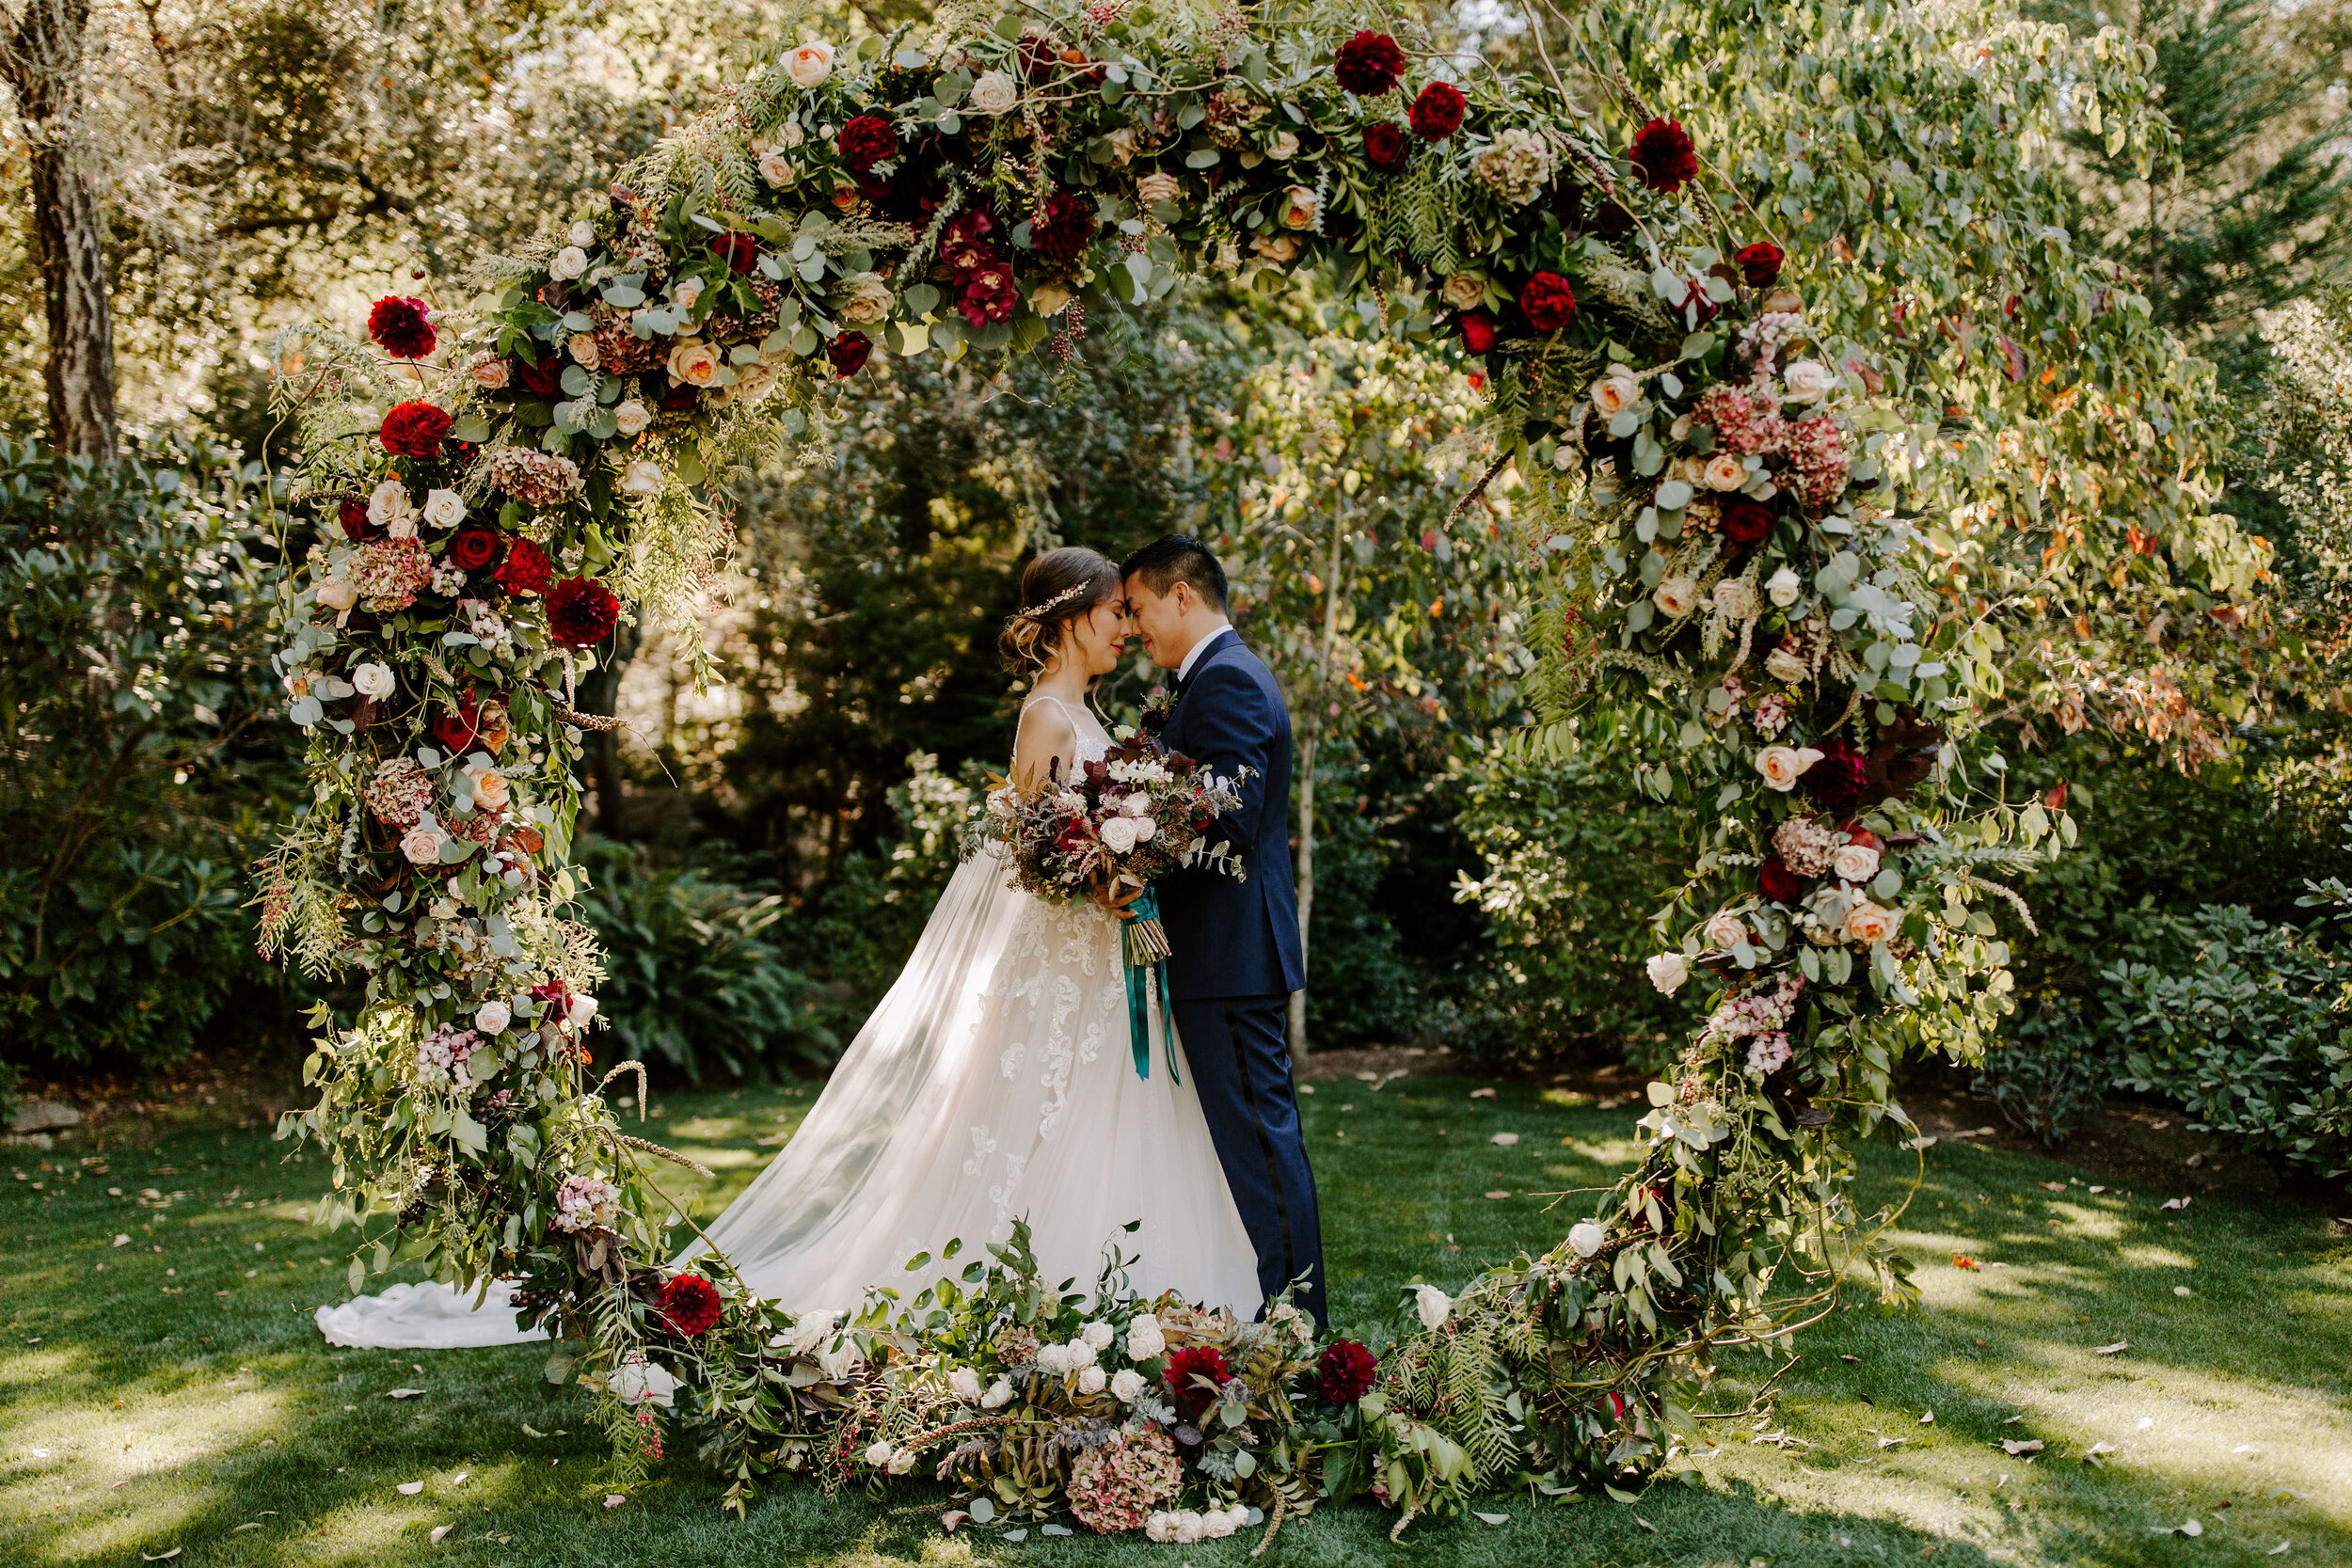 Fall Wedding Altar Ideas Featured in Town & Country Magazine2.jpg